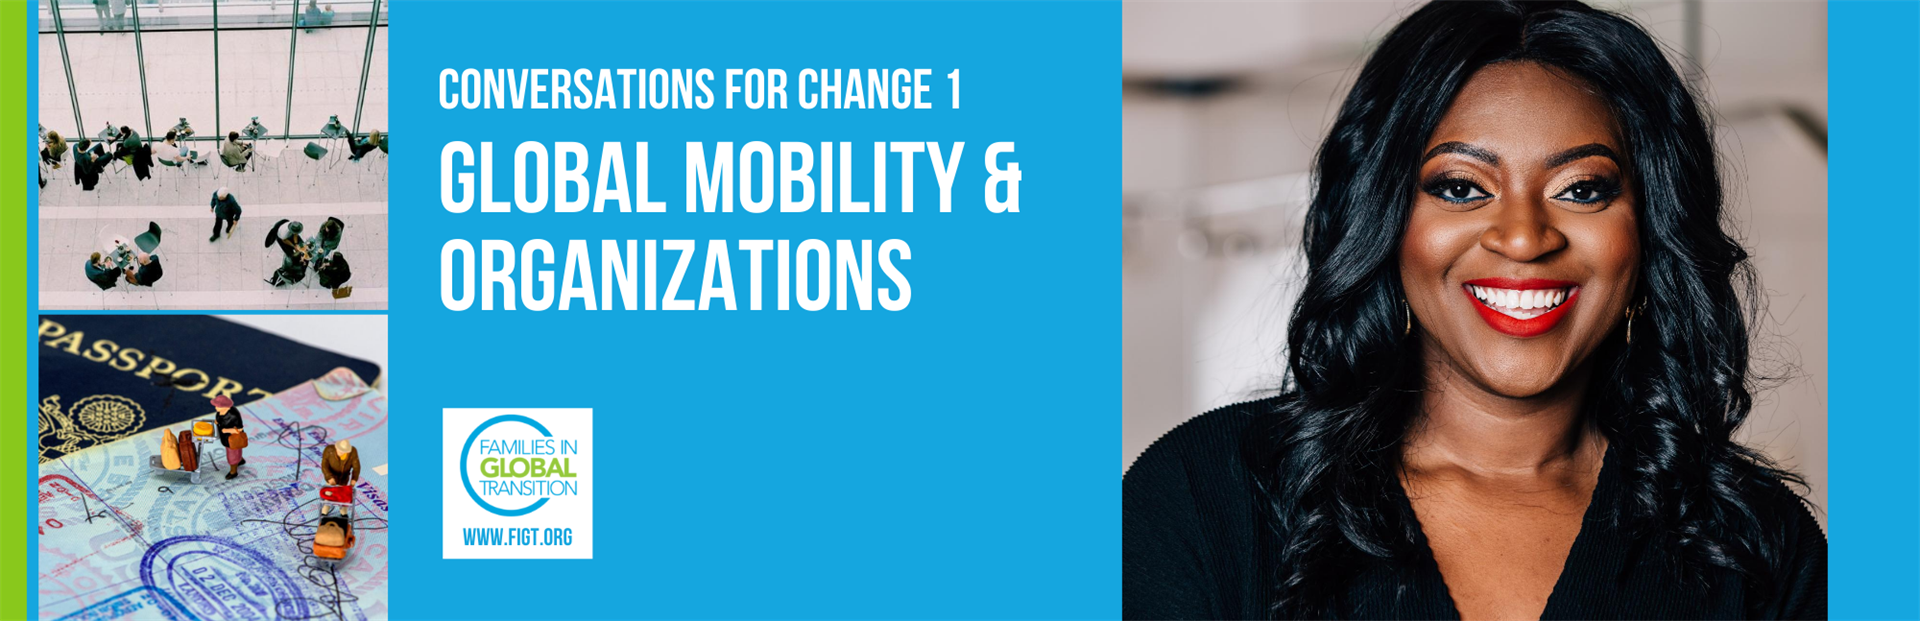 Blog title: global mobility and organizations